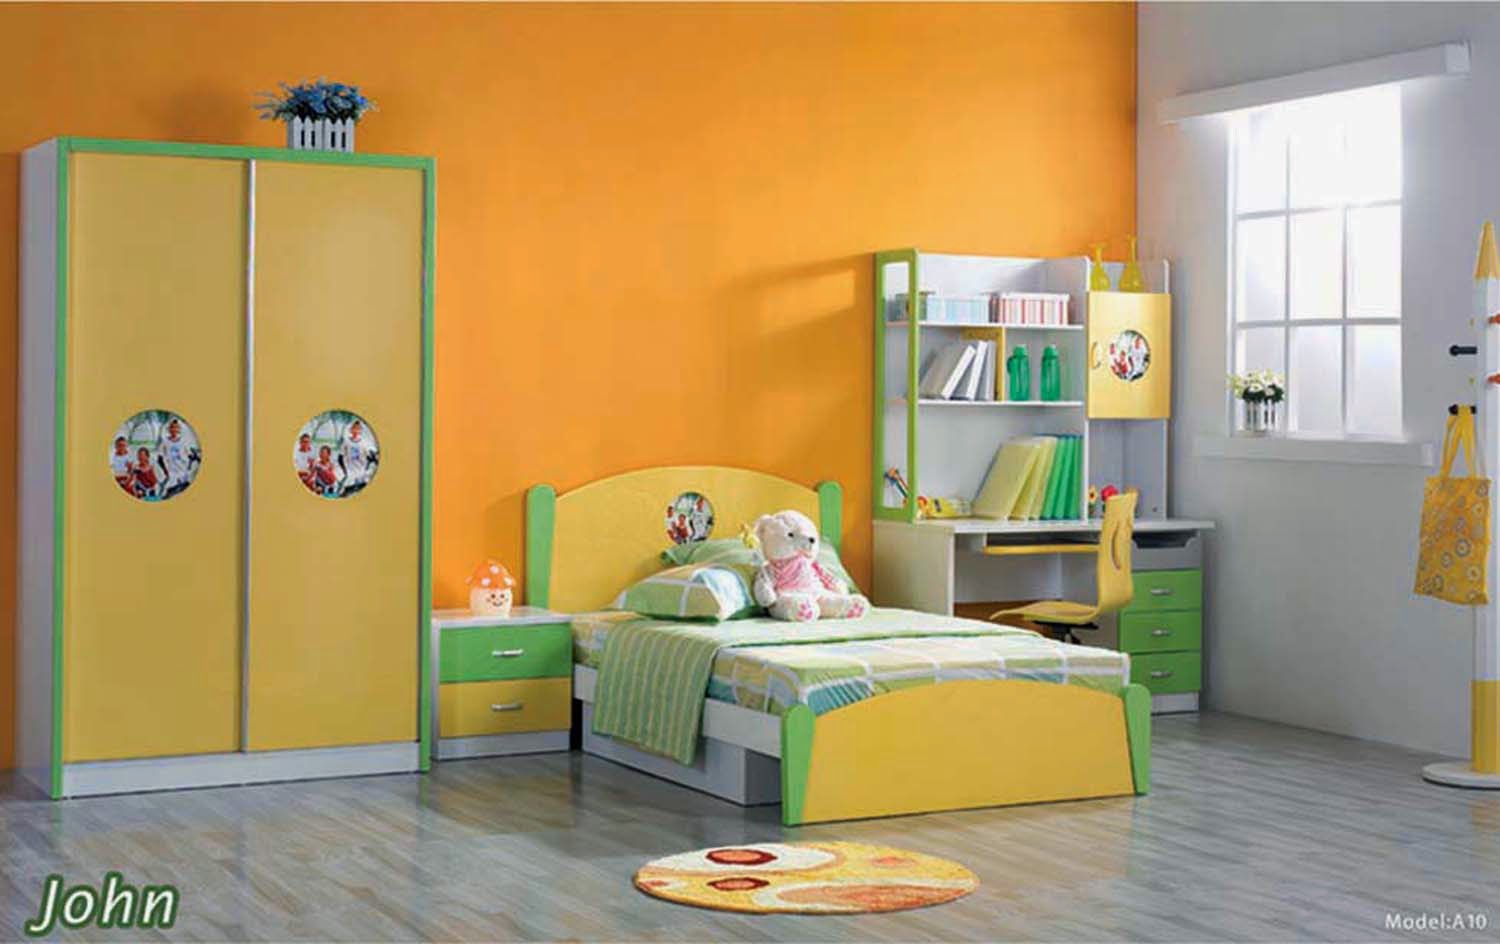 Kids Bedroom 2014 nine vastu ways to improve children room -vastu bulletin | vastu